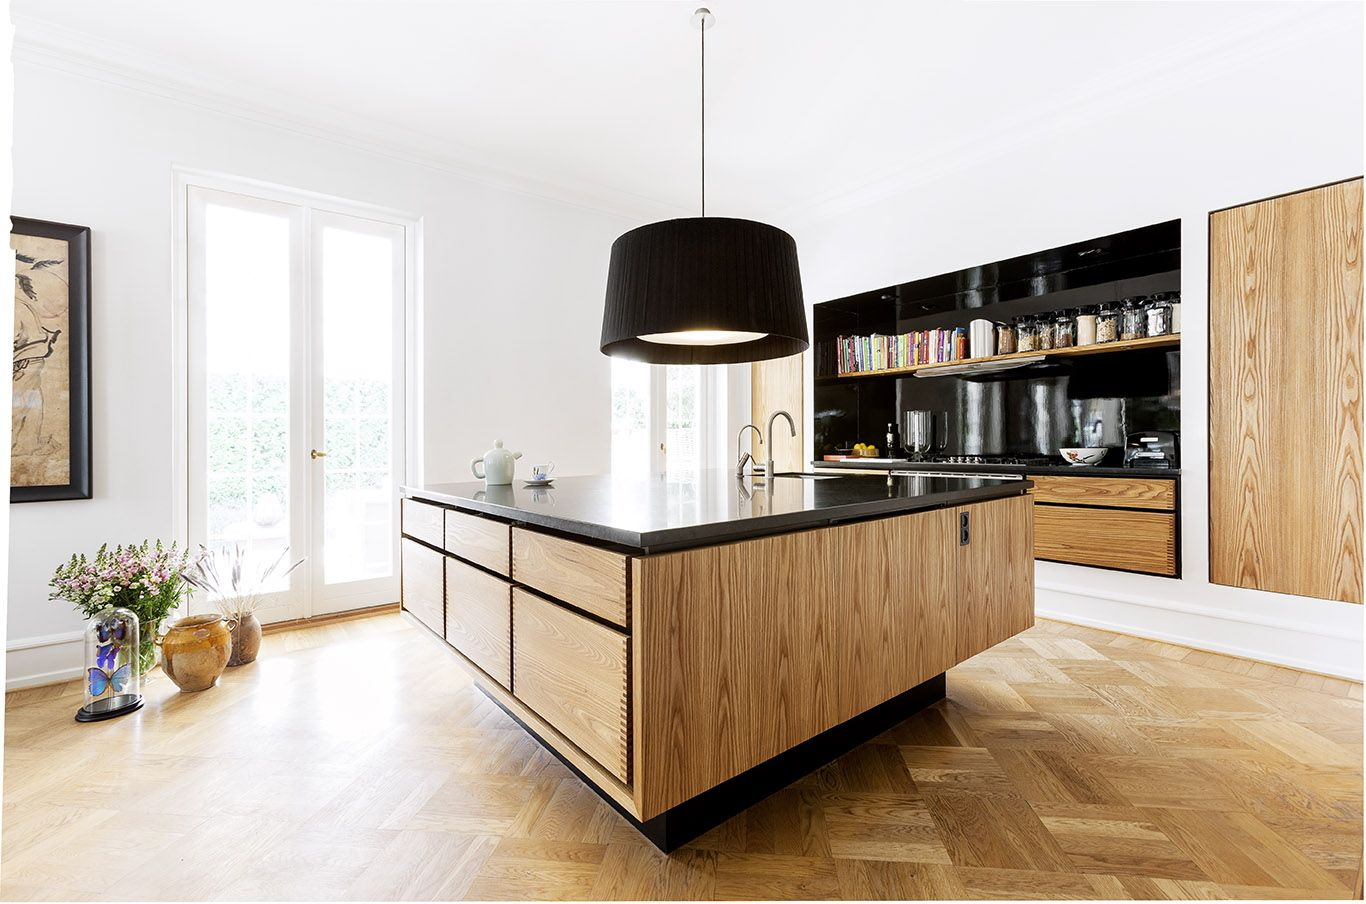 Scandinavian kitchen design modern and wooden touches for Modern scandinavian kitchen design